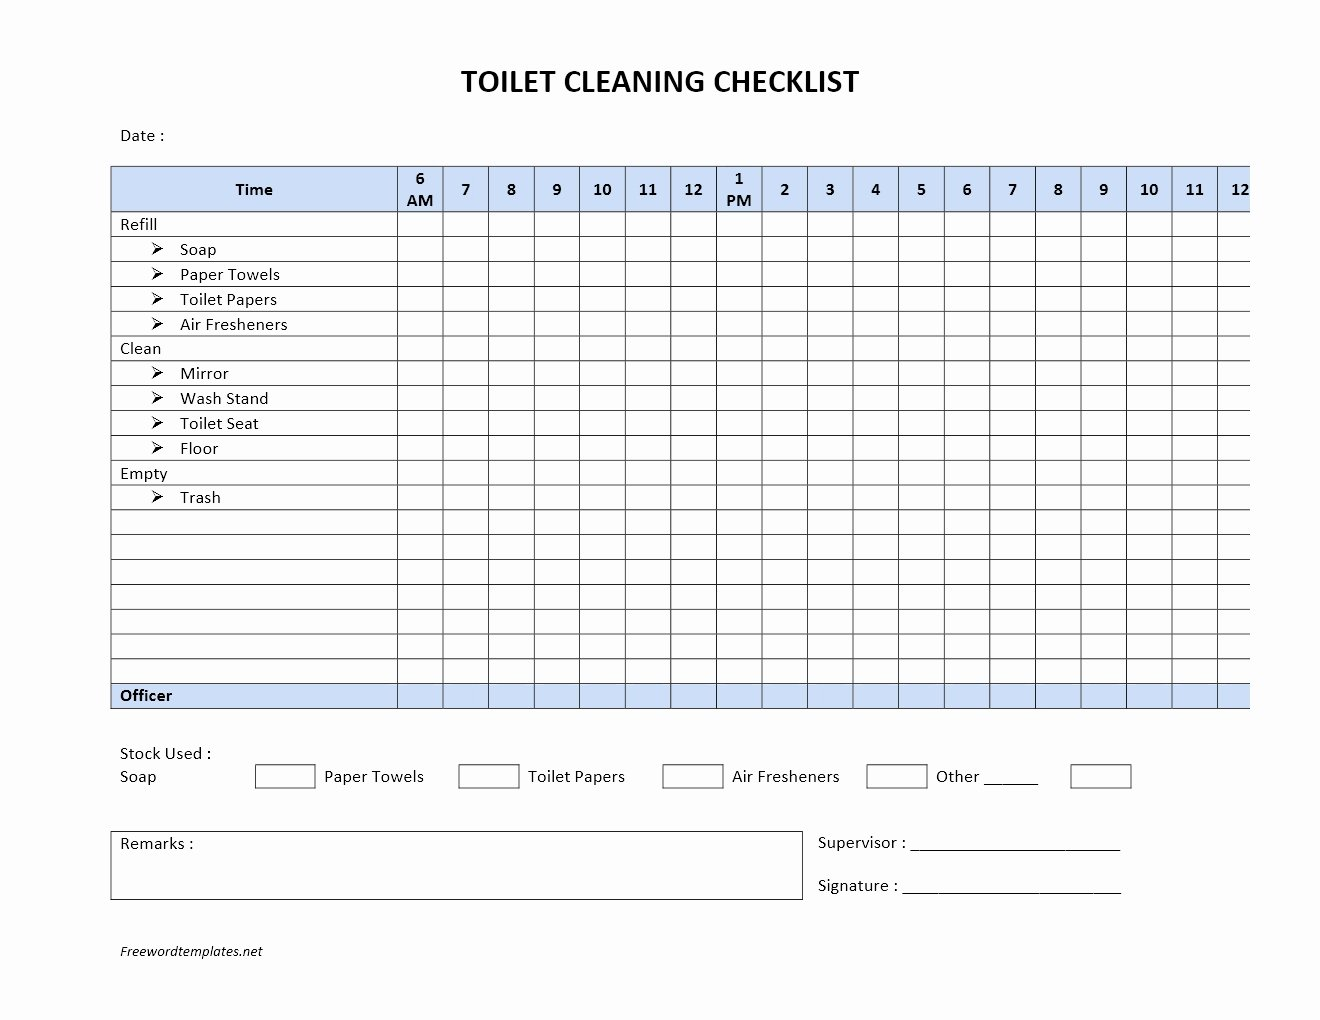 Bathroom Cleaning Checklist Template Lovely toilet Cleaning Checklist